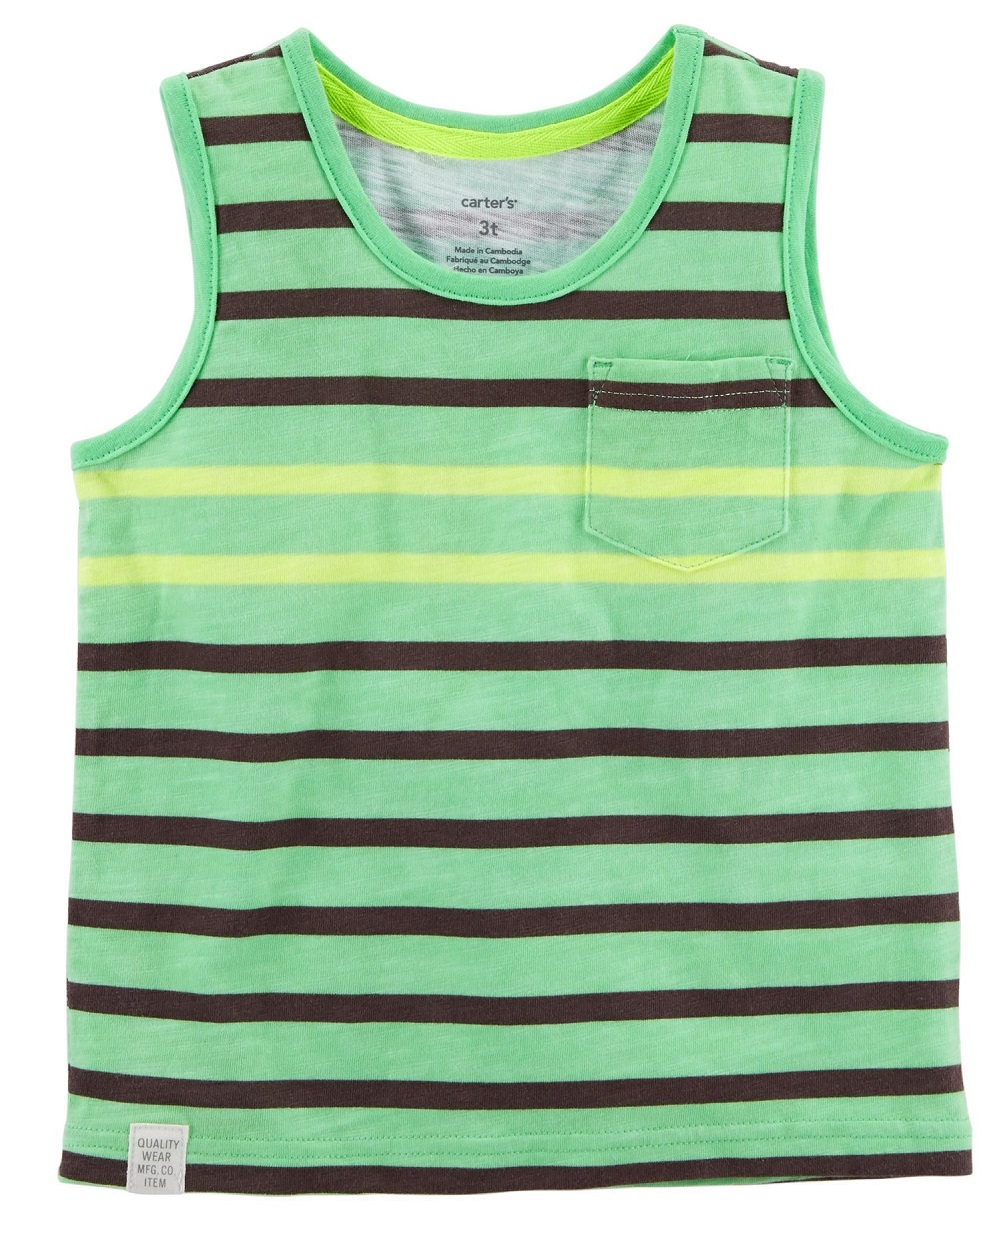 Carter's Little Boys' Neon Striped Tank Top